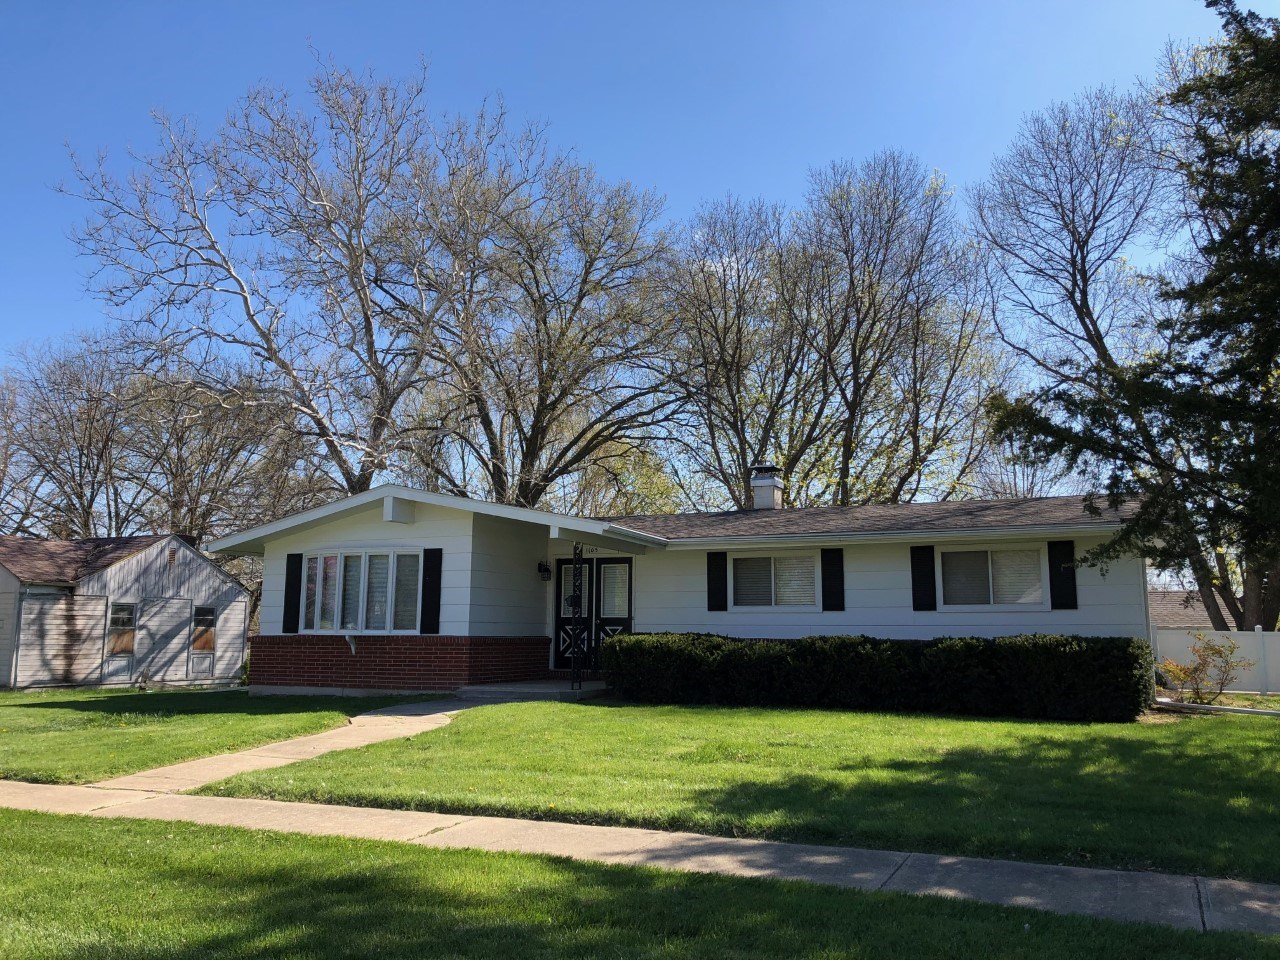 For Sale Home On Corner Lot Open Floor Plan Chillicothe, MO